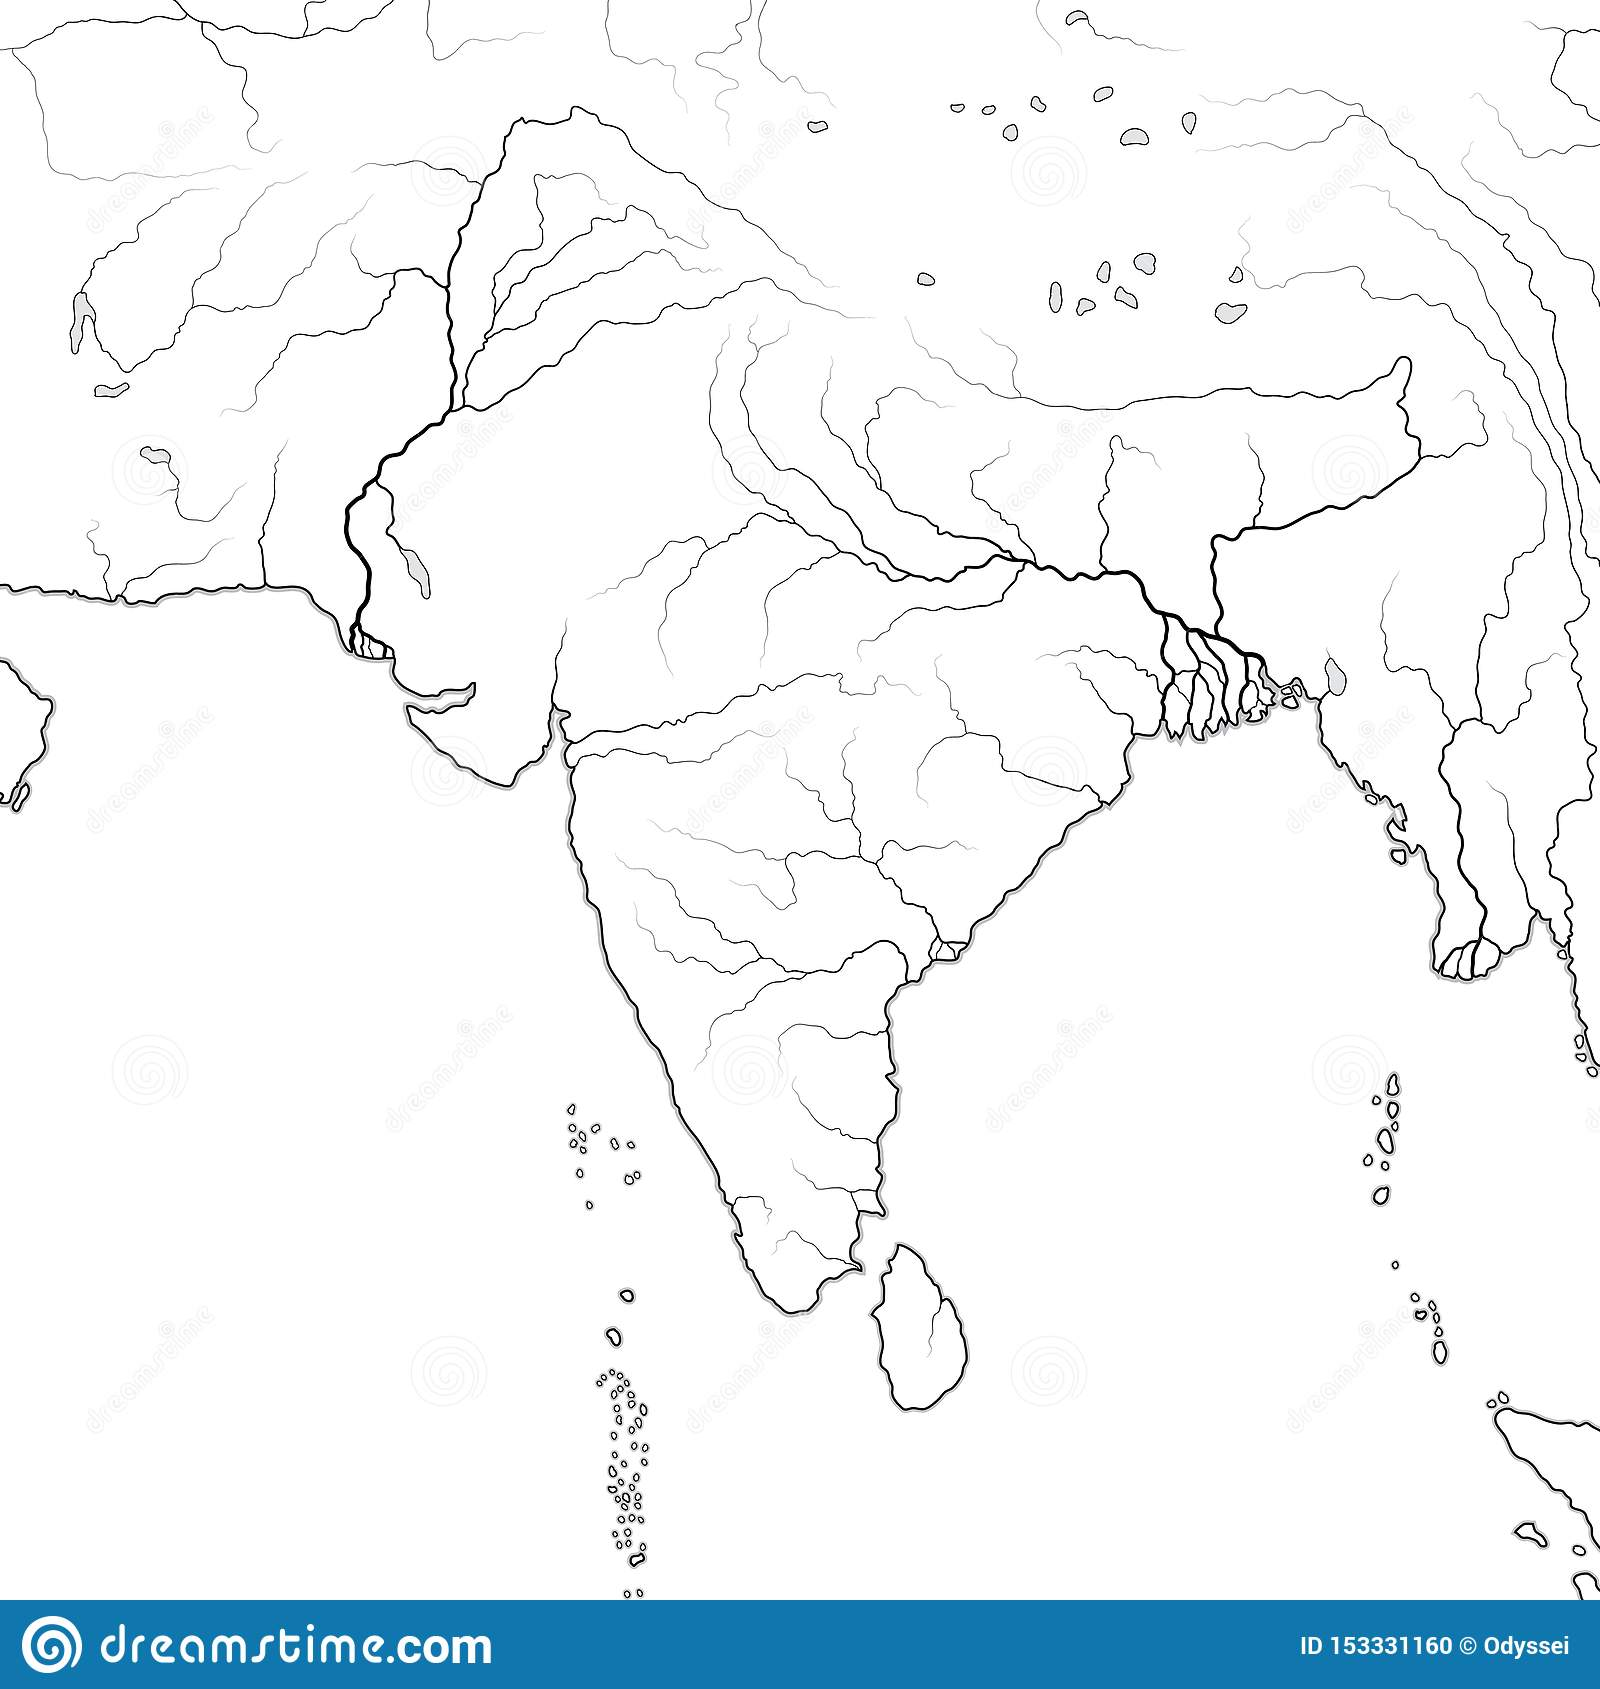 World Map Of INDIAN SUBCONTINENT: India, stan, Hindustan ... on pune on world map, europe on world map, china on world map, near east on world map, middle east on world map, amritsar on world map, arabian peninsula on world map, jammu and kashmir on world map, the caribbean on world map, korean peninsula on world map, great britain on world map, yangtze river on world map, shang empire on world map, tamluk on world map, scandinavia on world map, benelux on world map, sahara on world map, sundarbans on world map, asian on world map, deccan peninsula on world map,